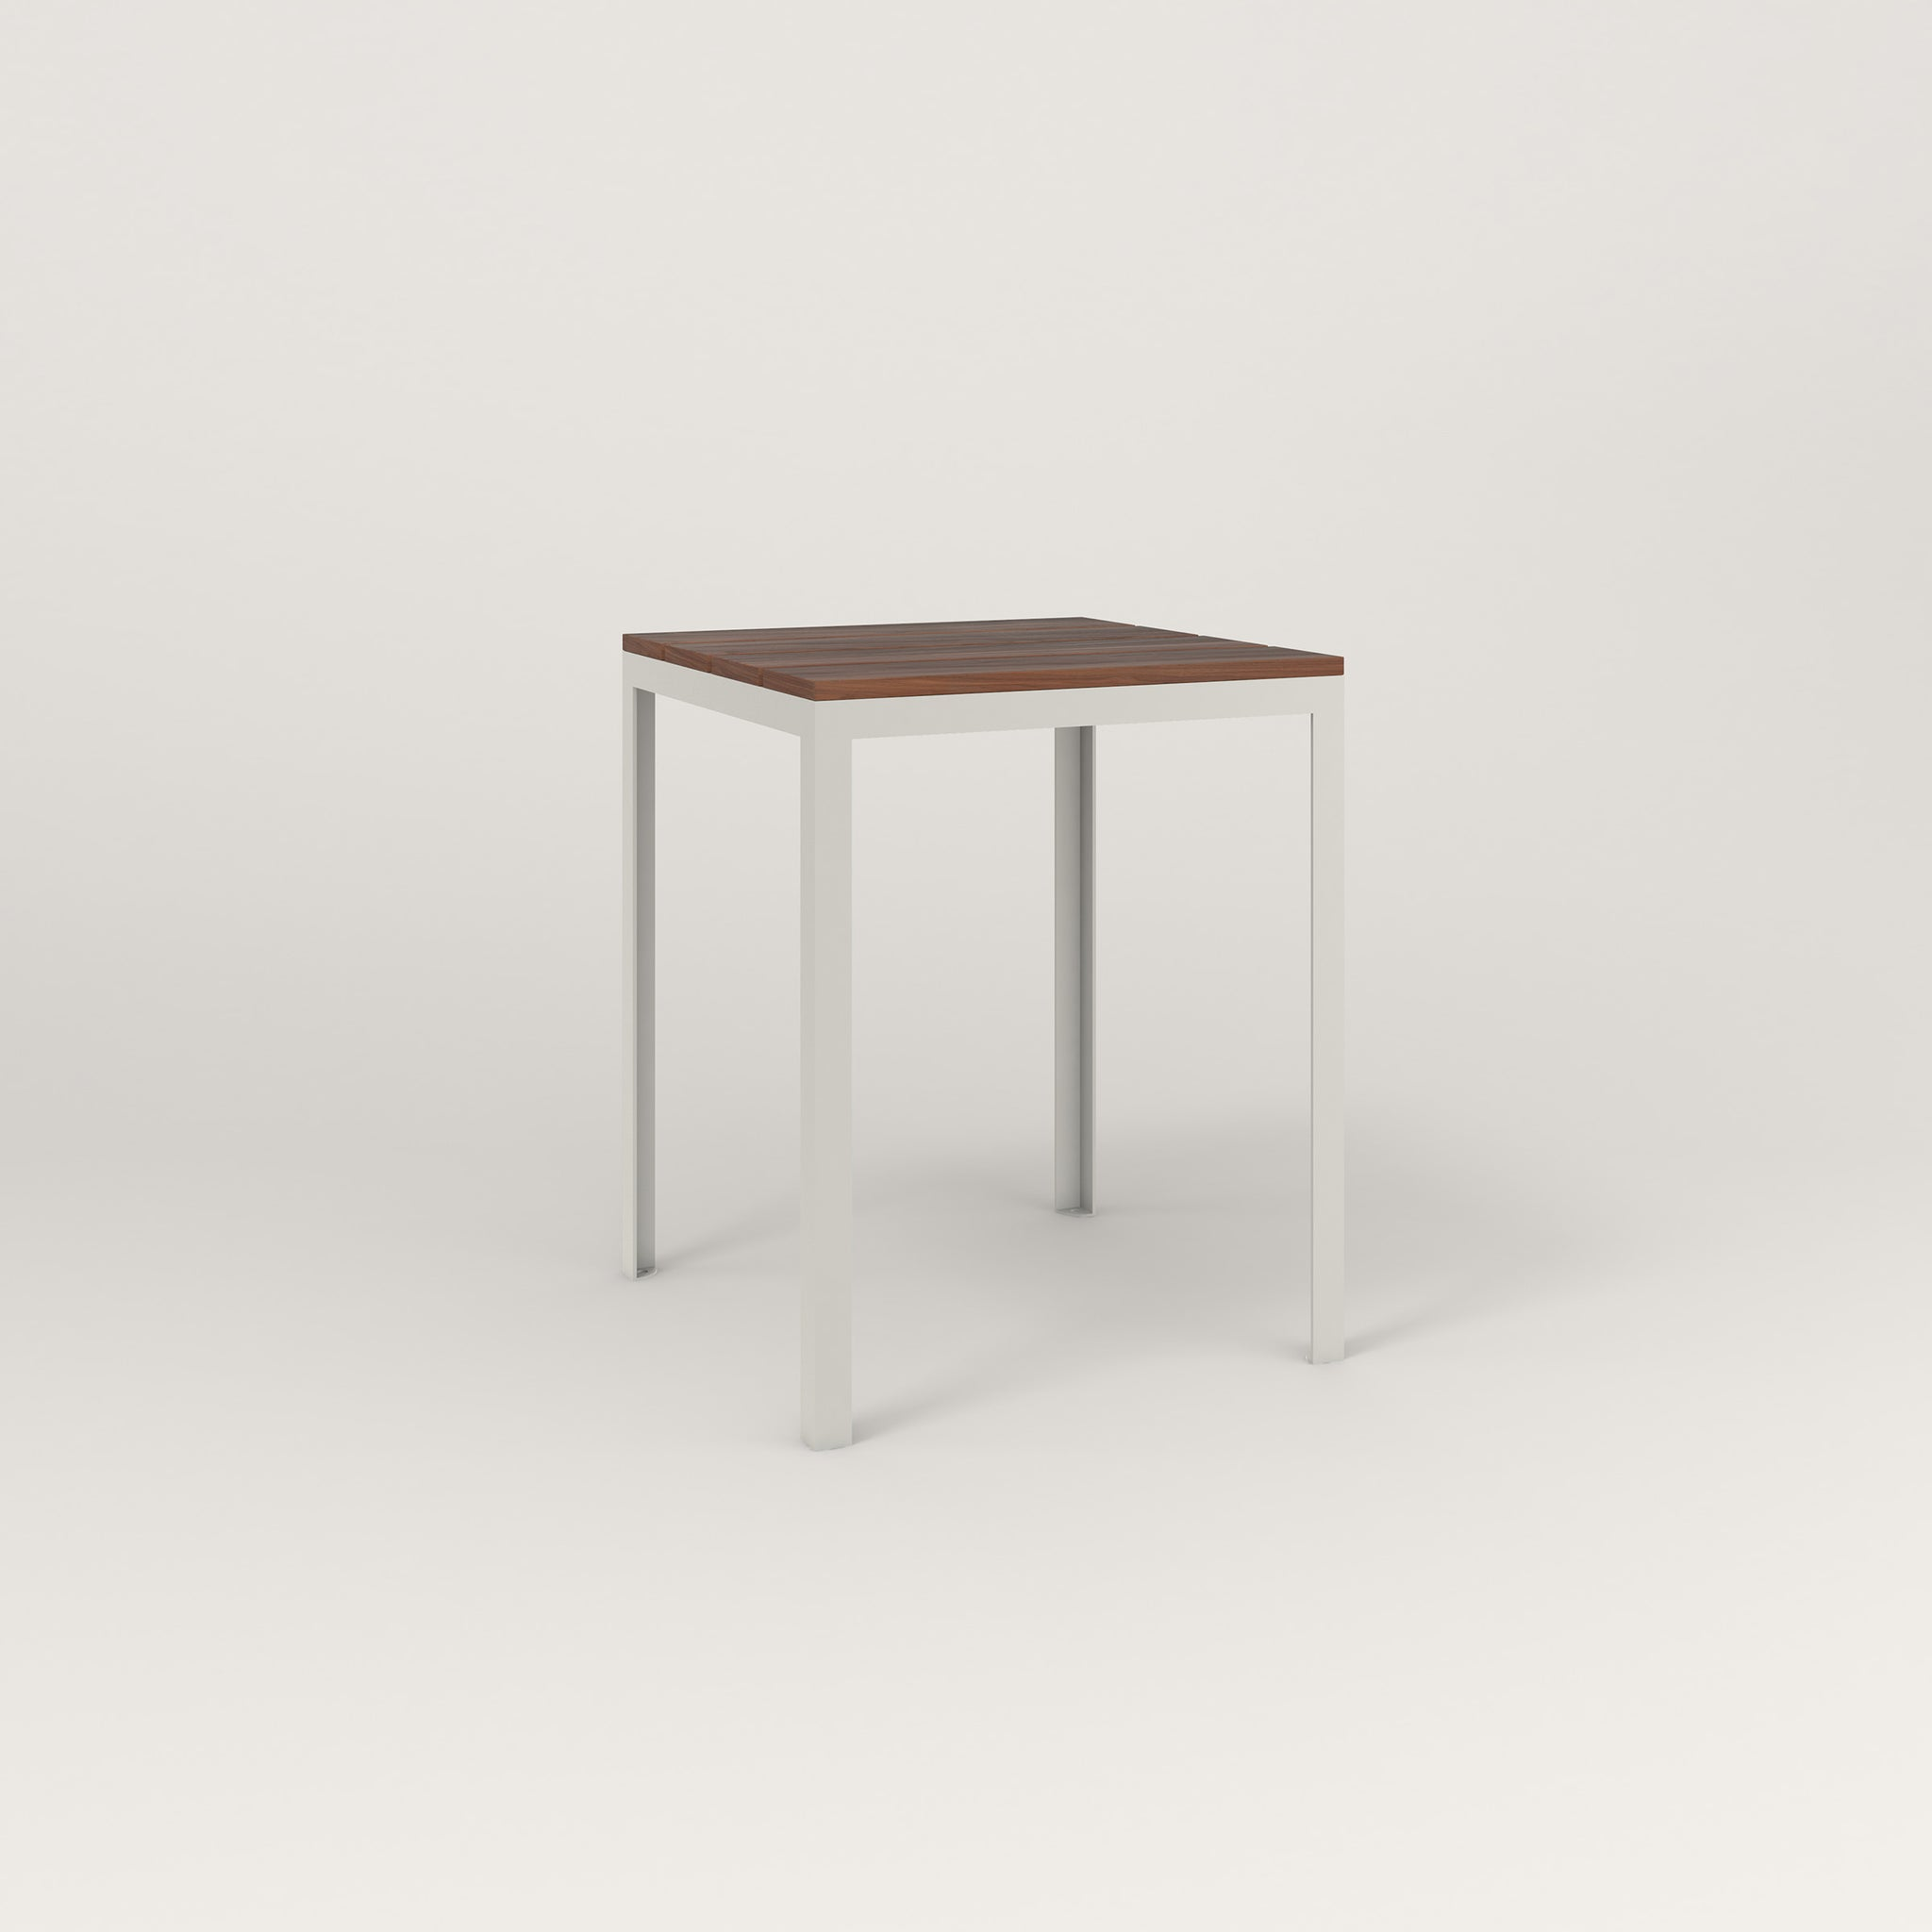 RAD Signature Square Cafe Table, in slatted wood and white powder coat.